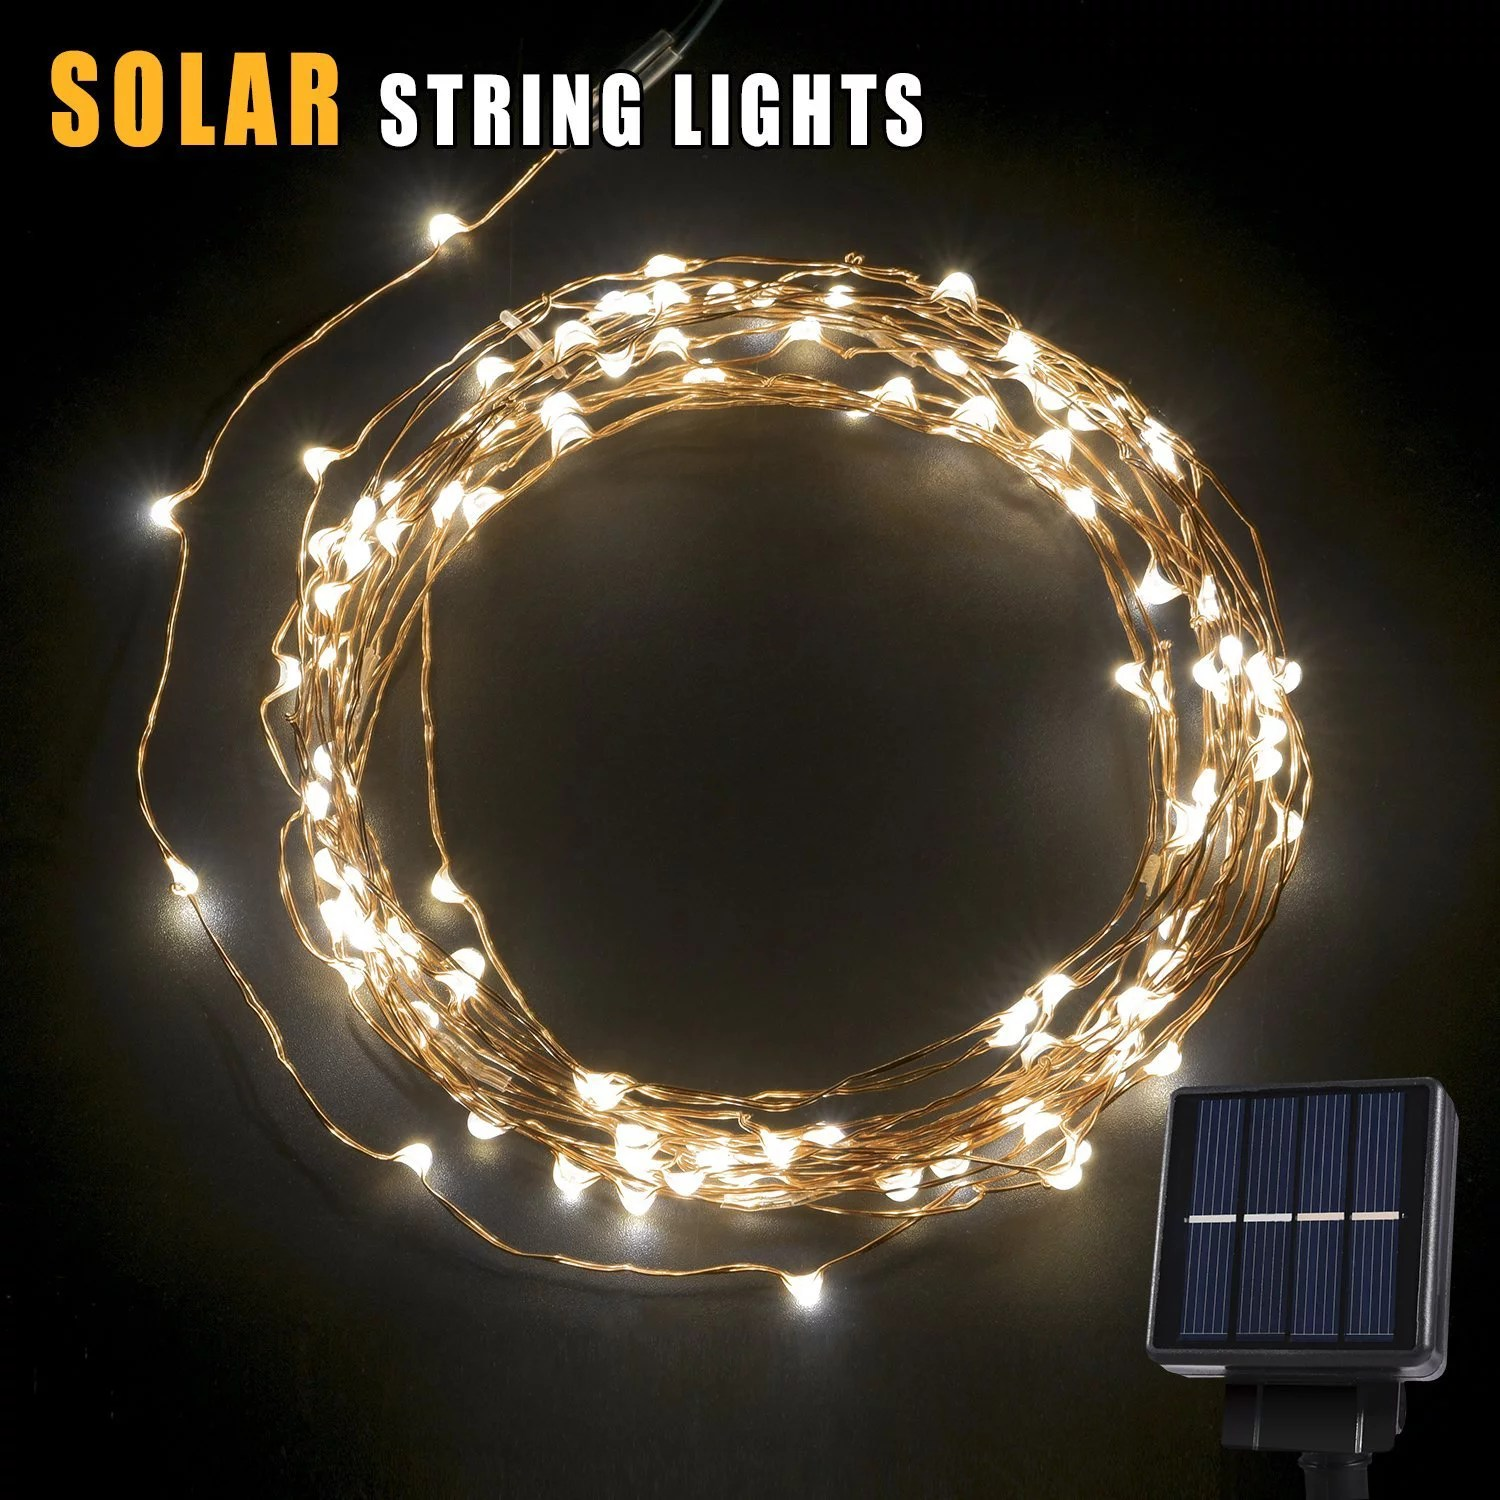 hight resolution of betterhome 120 leds outdoor solar powered led string lights 19ft waterproof copper wire lights for garden home party walmart com